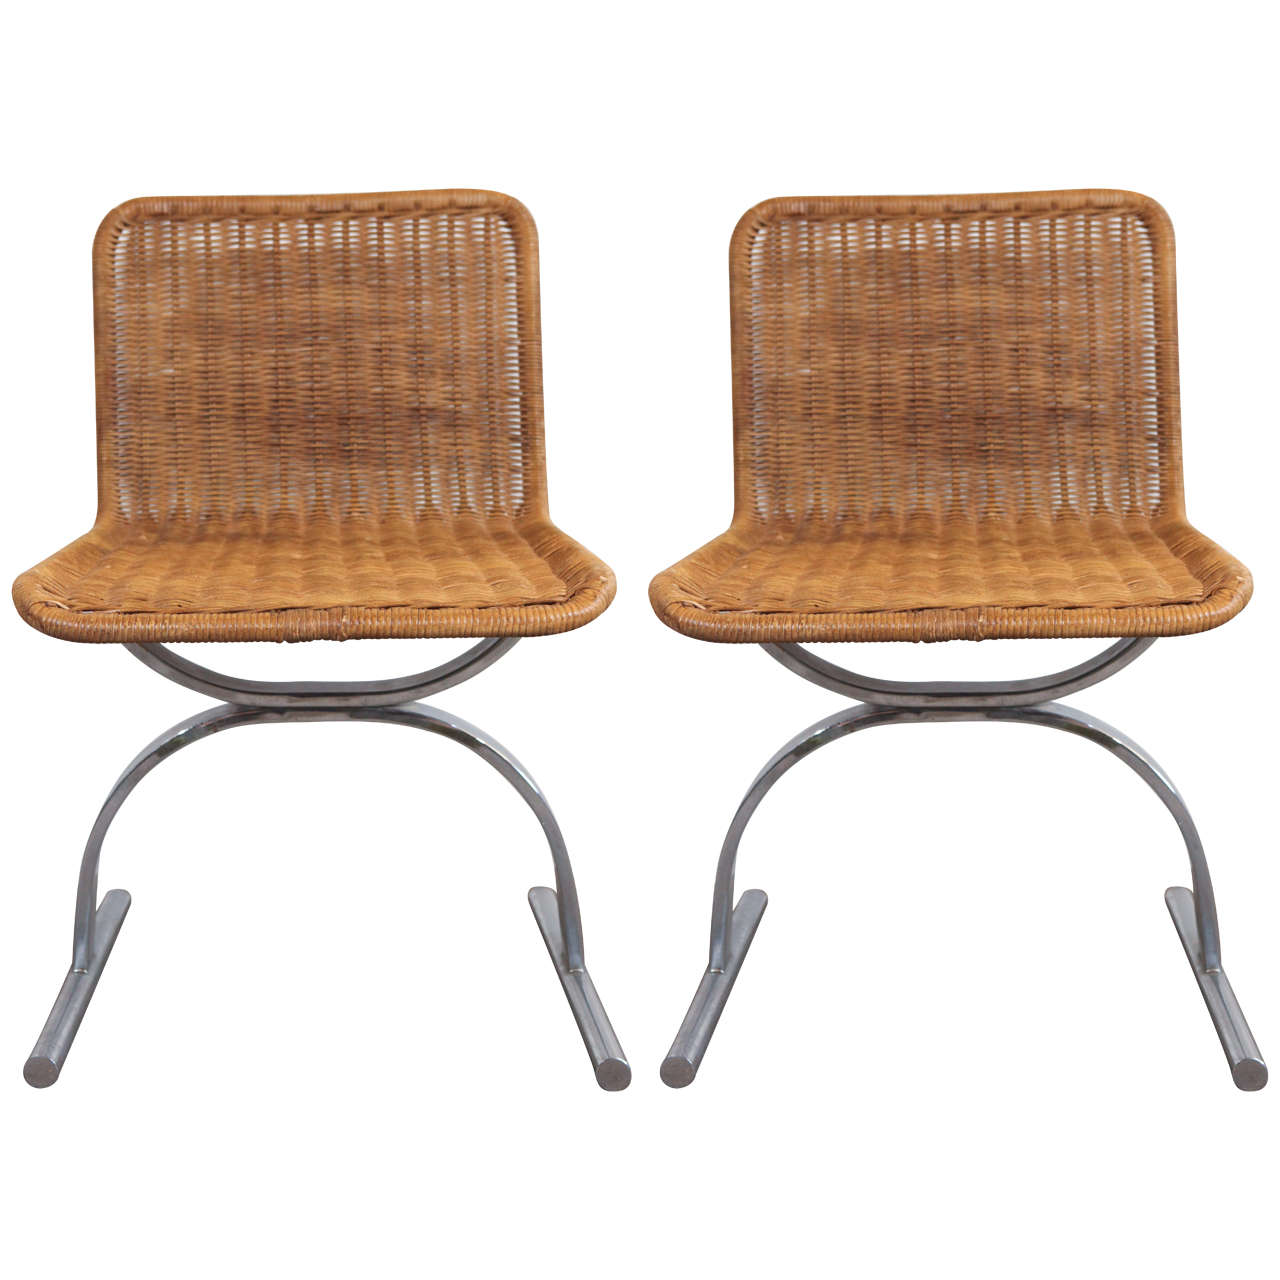 Pair of Cane and Chrome Side Chairs